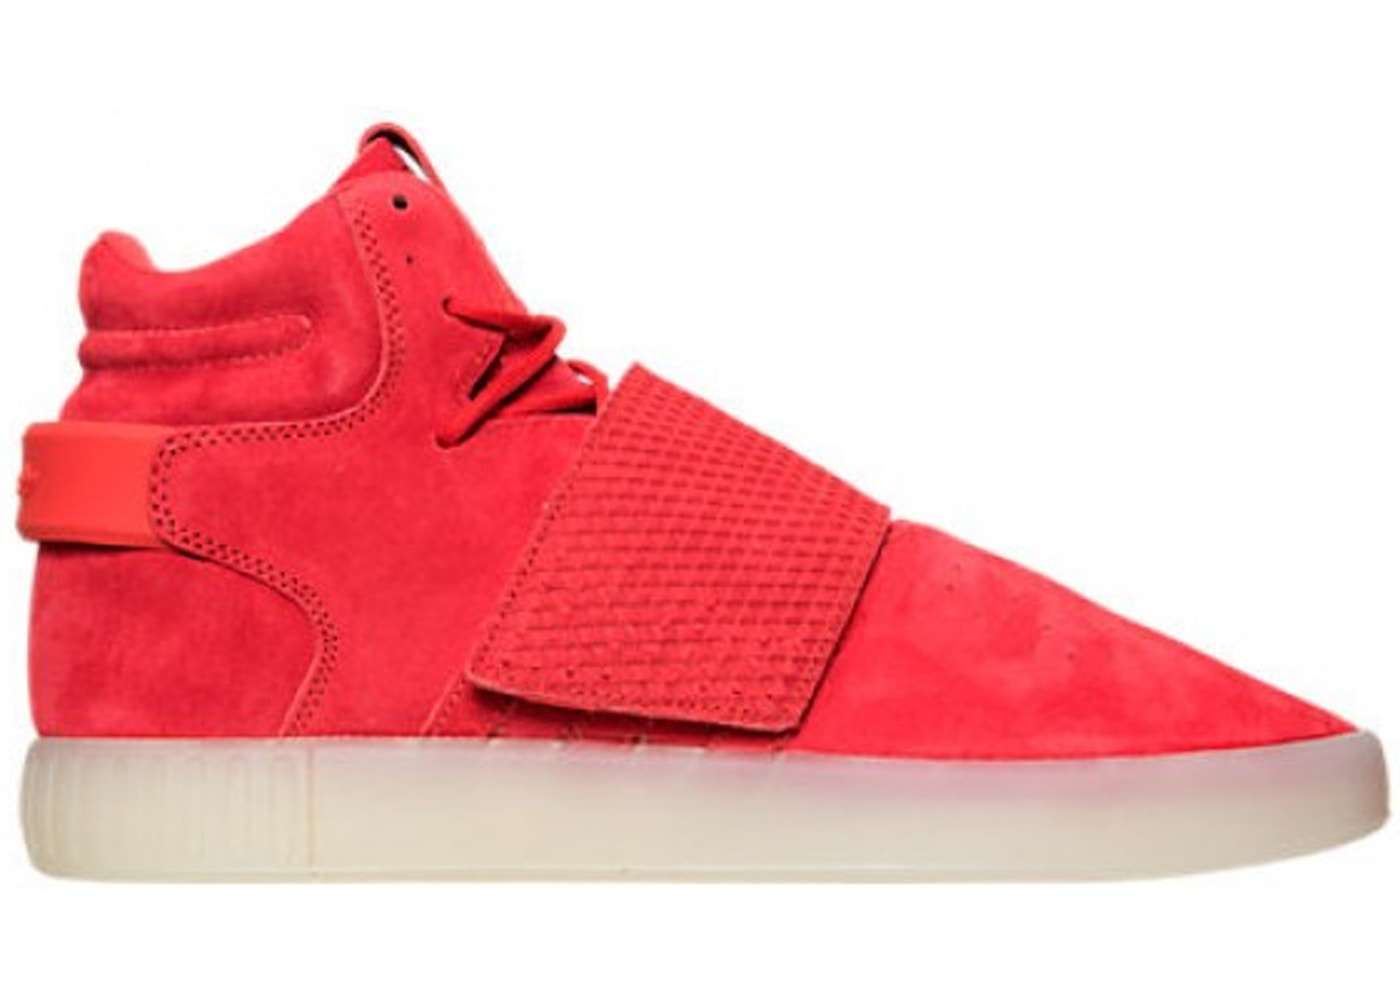 low priced 68118 9d3e5 adidas Tubular Invader Strap Red